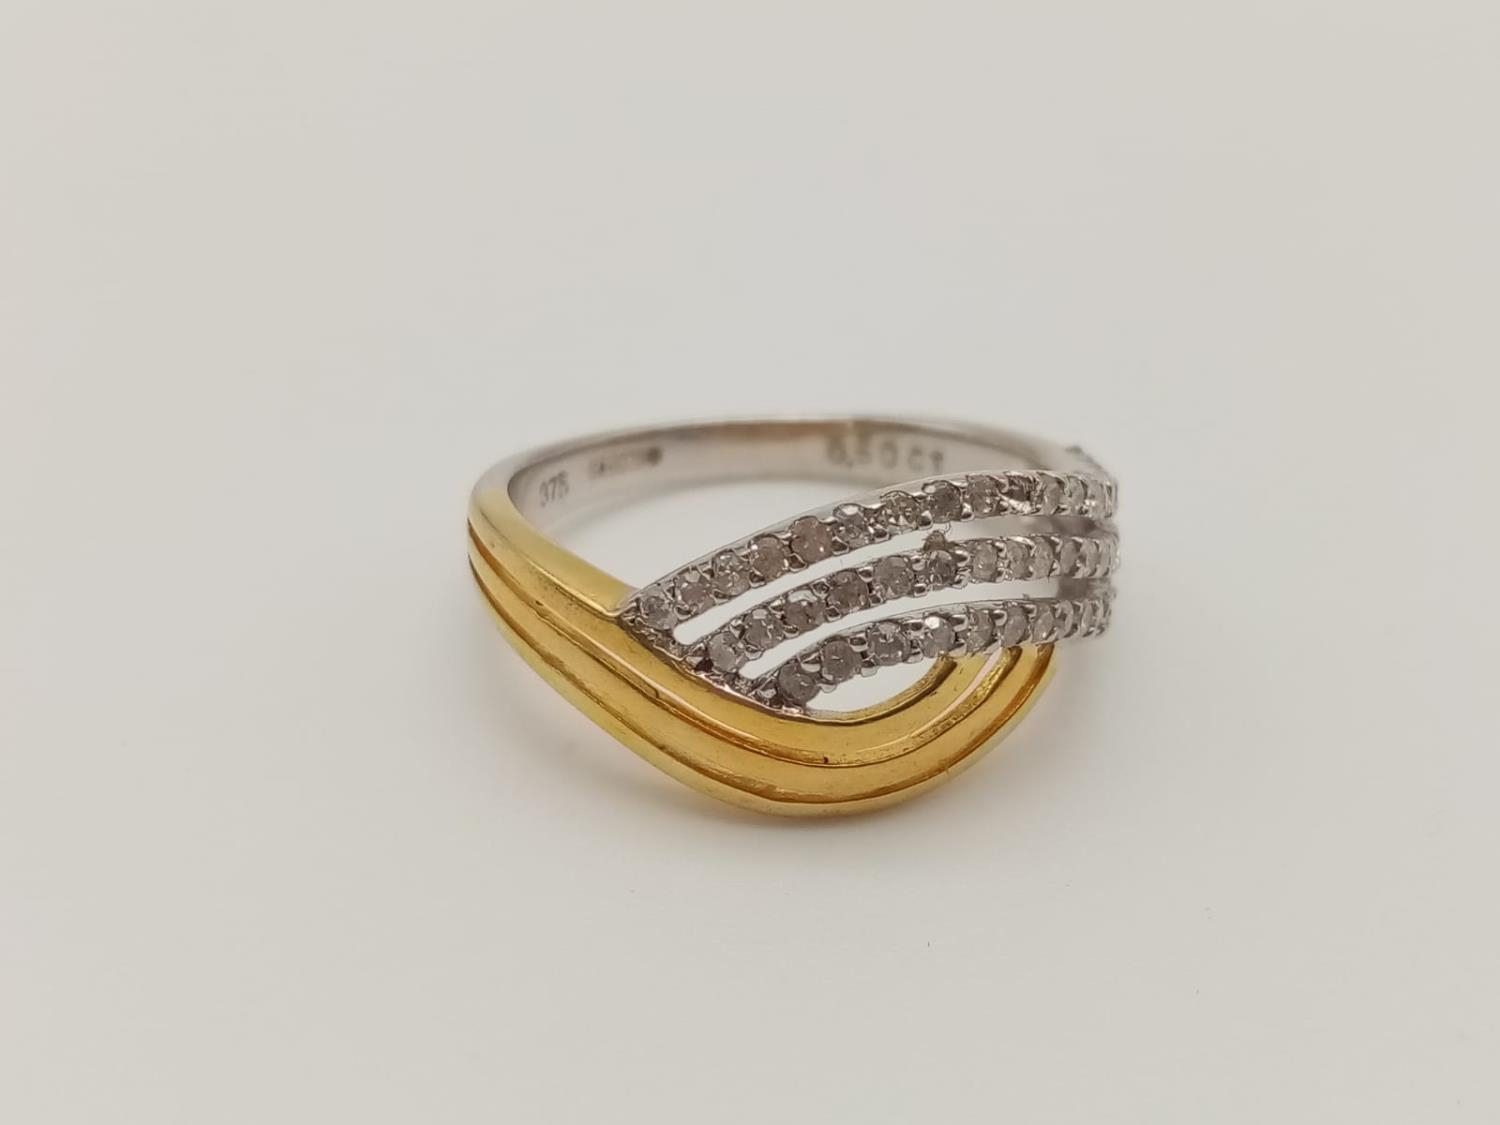 9k yellow and white gold diamond set ring with 0.50ct diamonds, weight 3.2g and size P